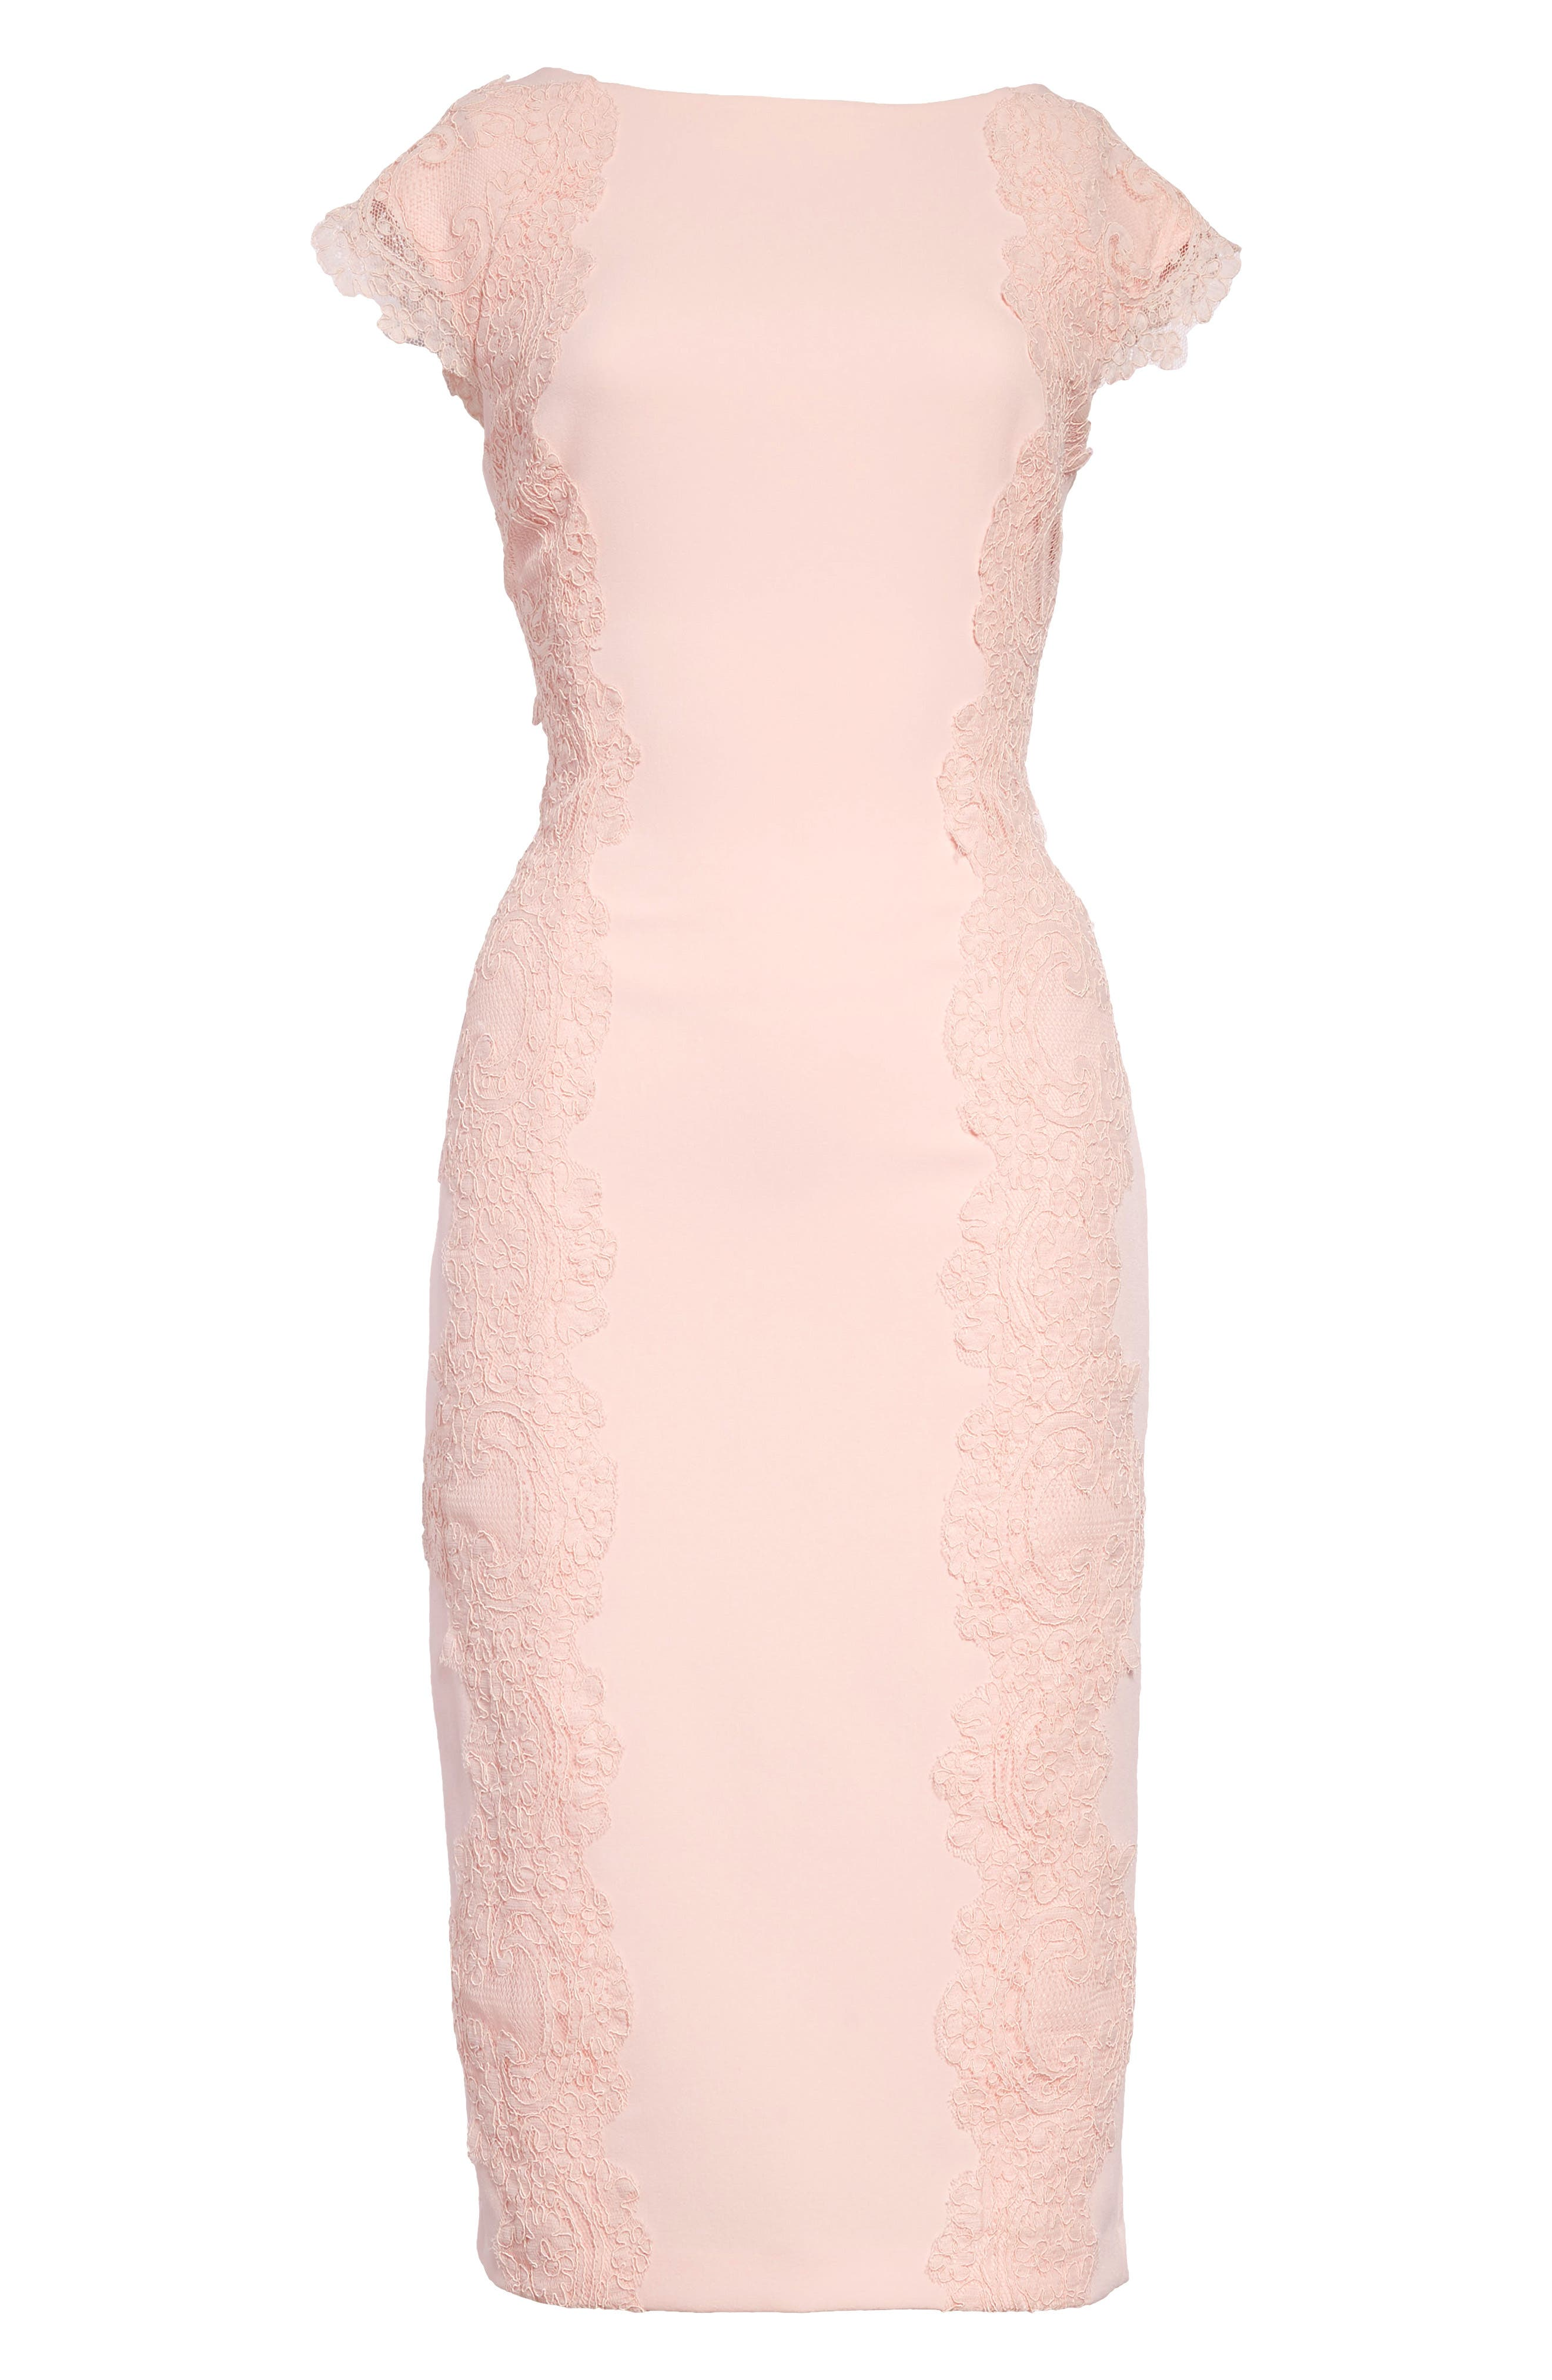 Lace Detail Crepe Sheath Dress,                             Alternate thumbnail 7, color,                             BLUSH